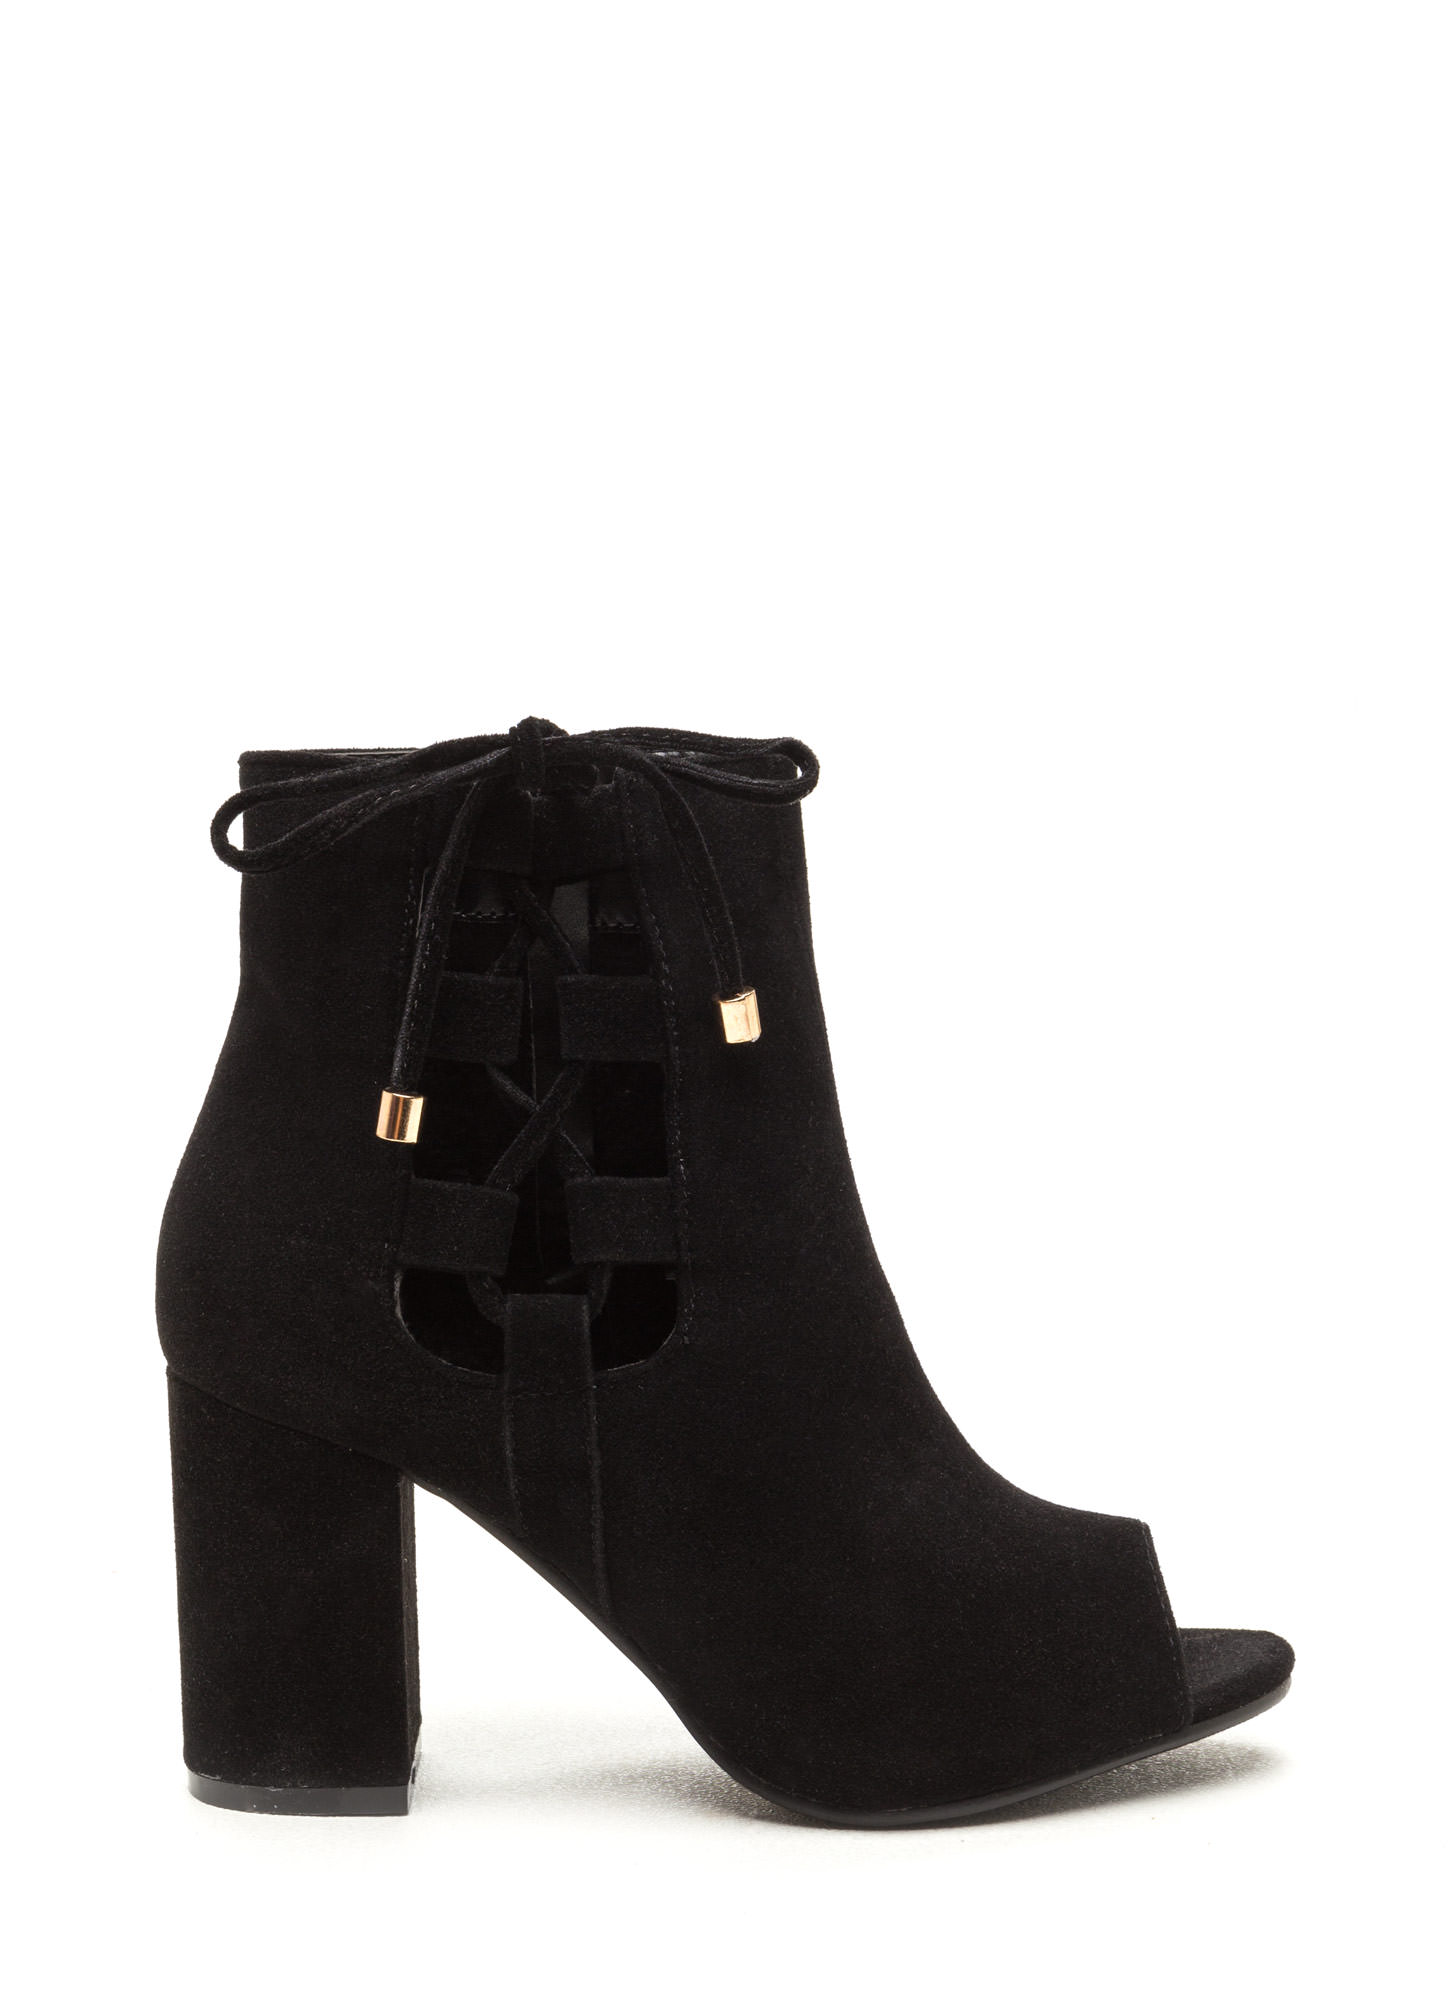 After Sunrise Lace-Up Chunky Booties BLACK